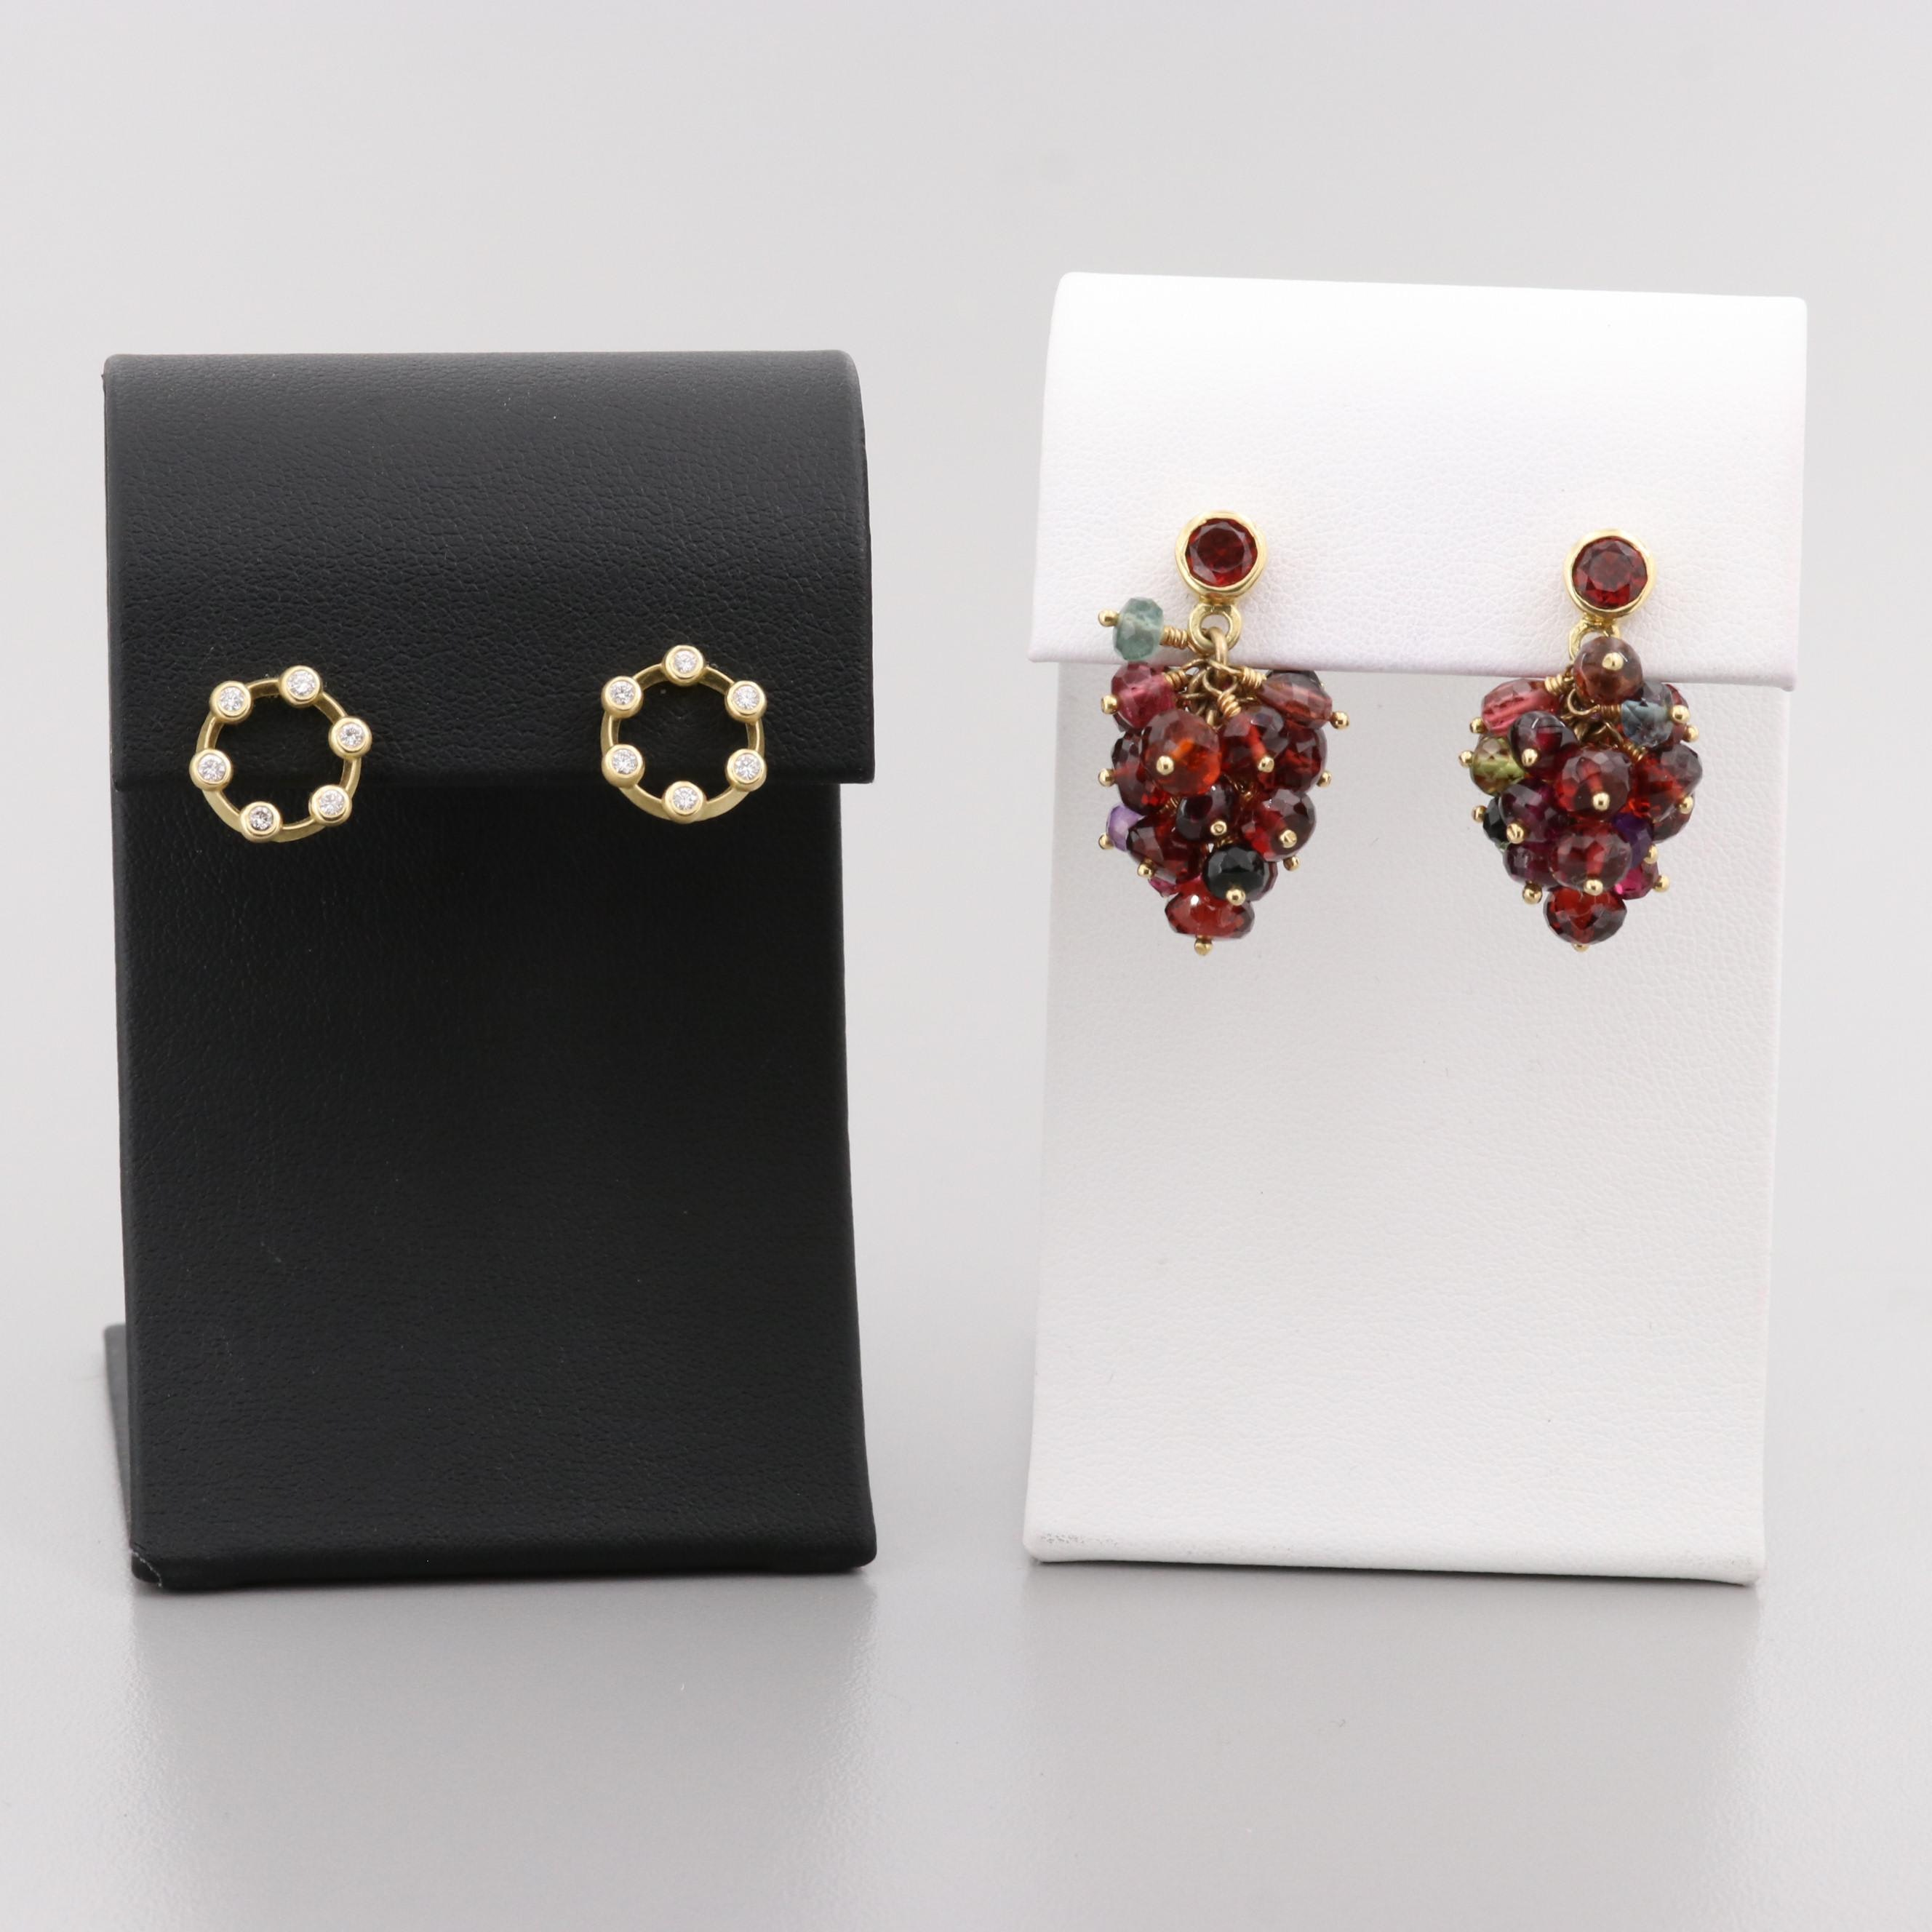 Two Pair of 18K Yellow Gold Diamond and Gemstone Earrings